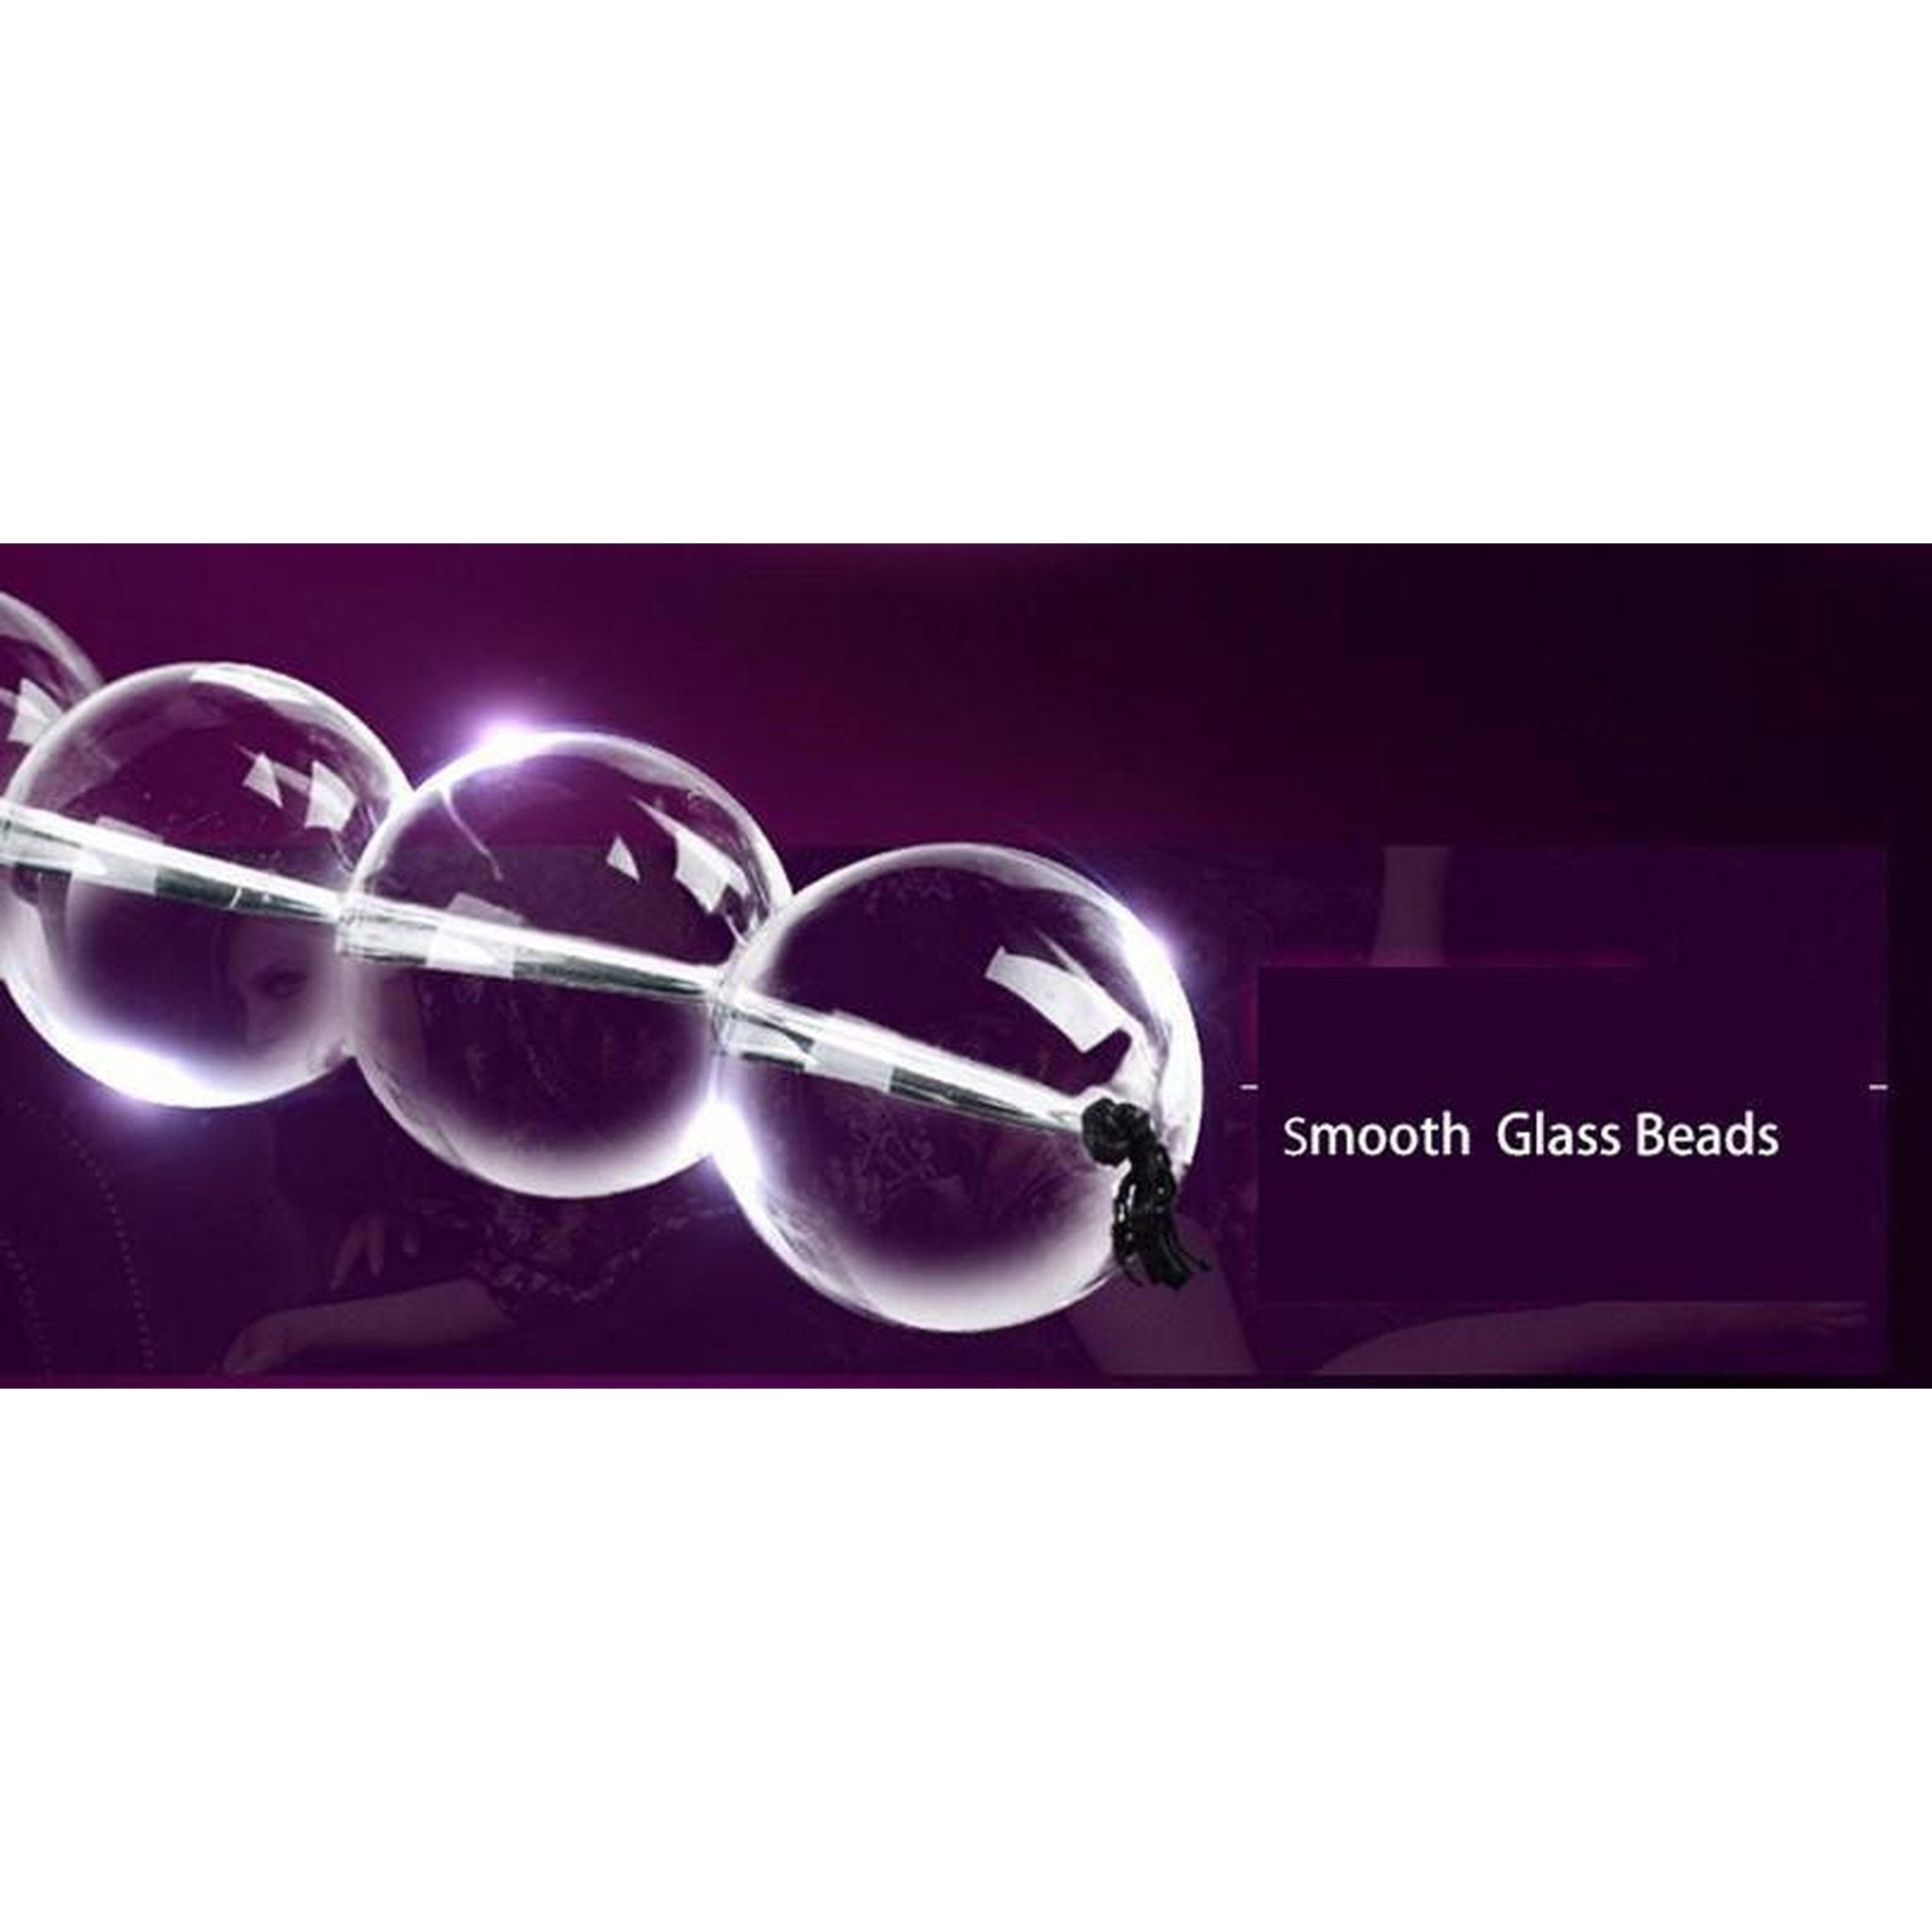 Glass Anal/Vaginal Beads - 4 sizes-Good Girl xox-S Size-buy-bdsm-bondage-gear-tools-toys-online-good-girl-xox